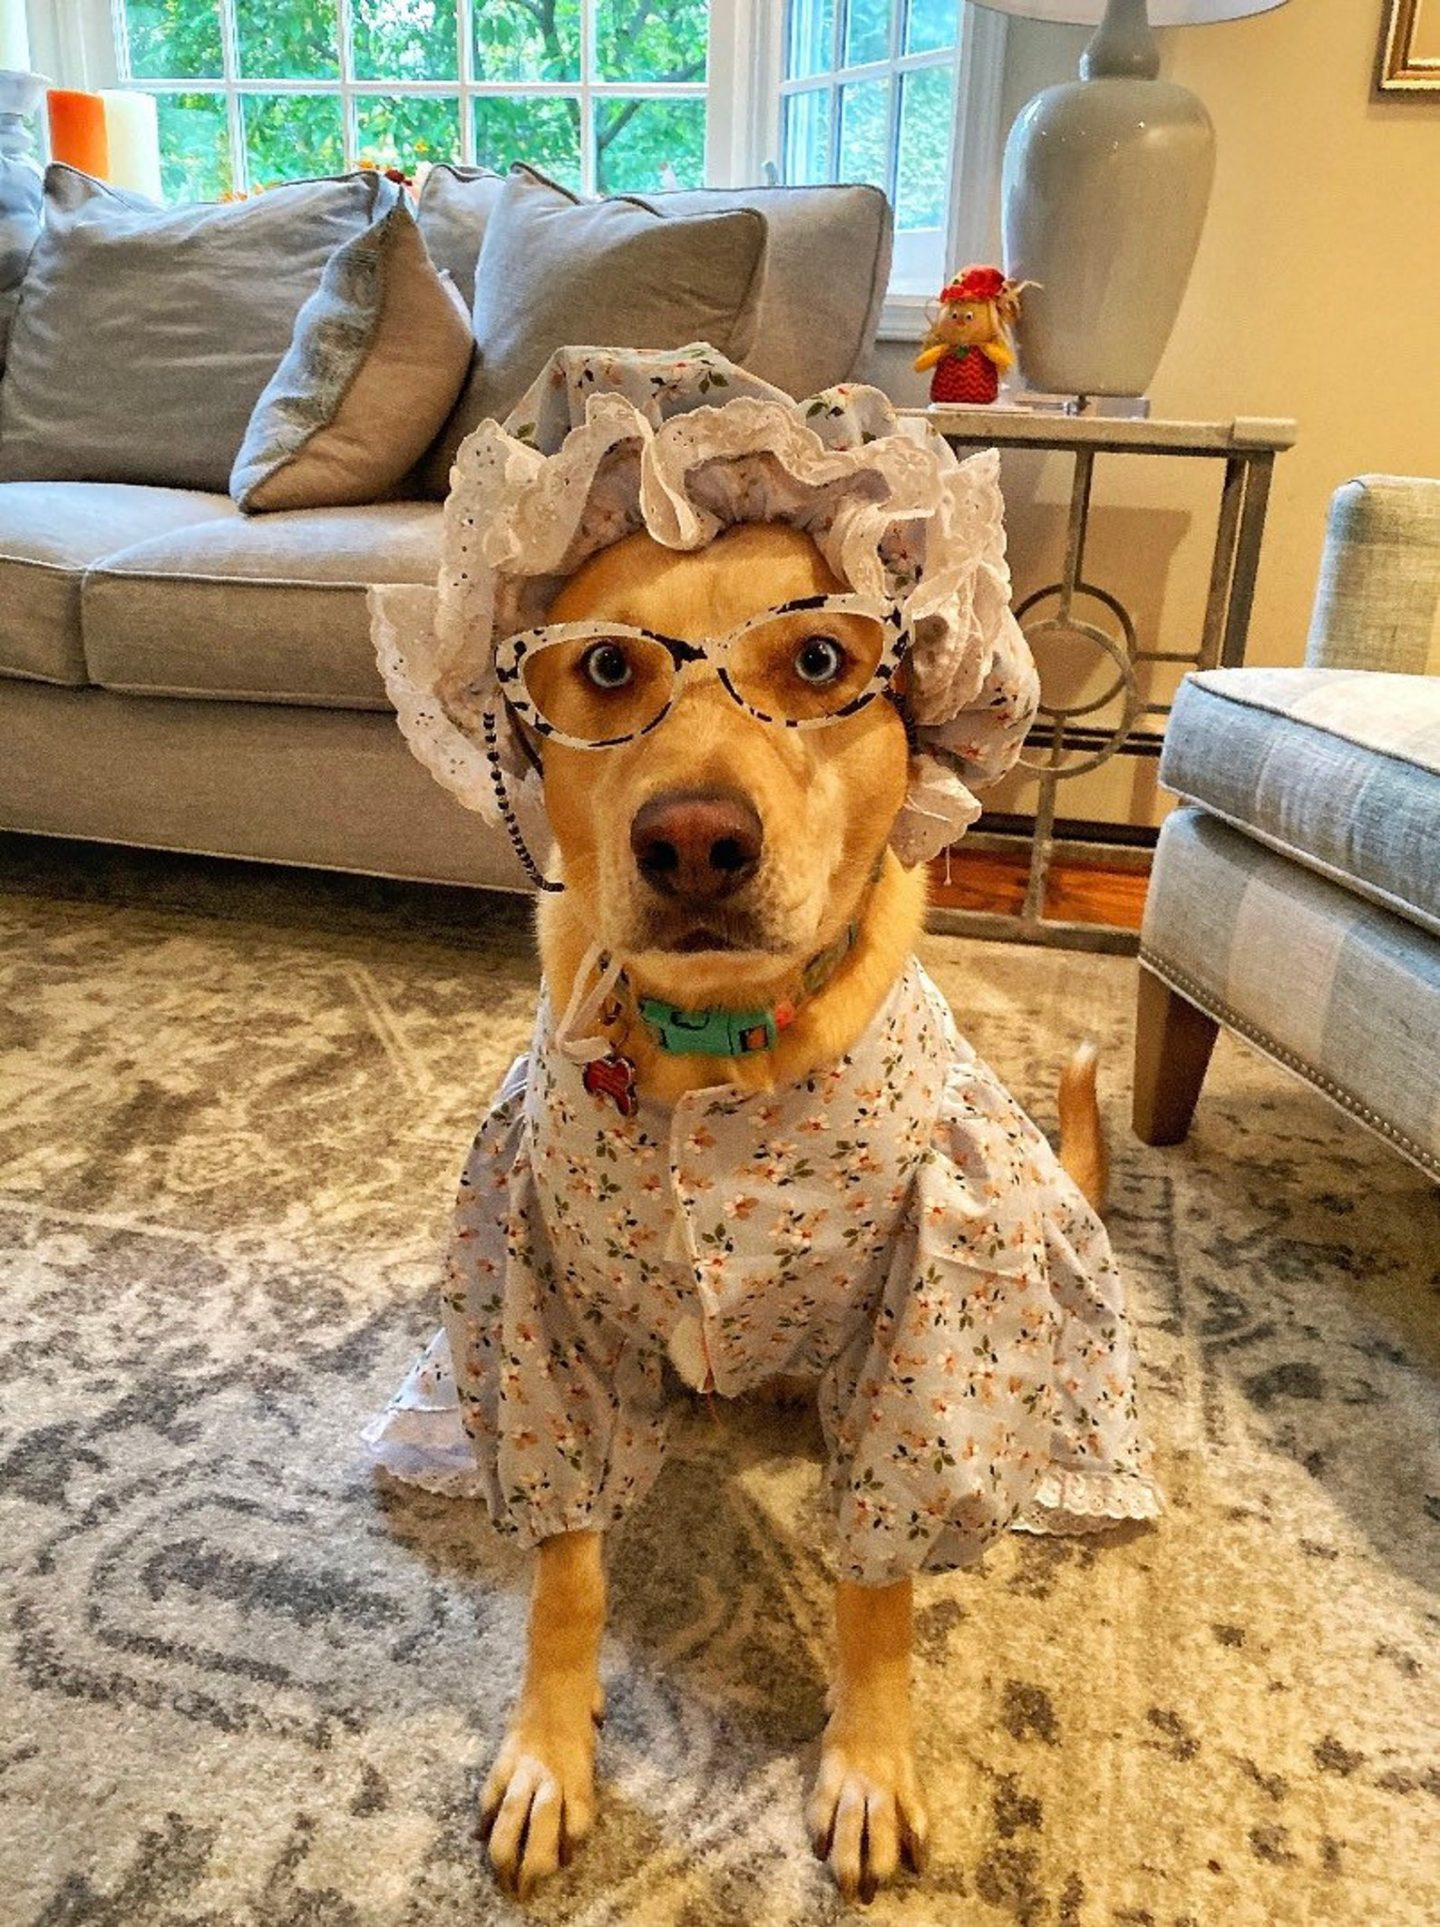 Old grandma Halloween costume with robe and bonnet for large dogs